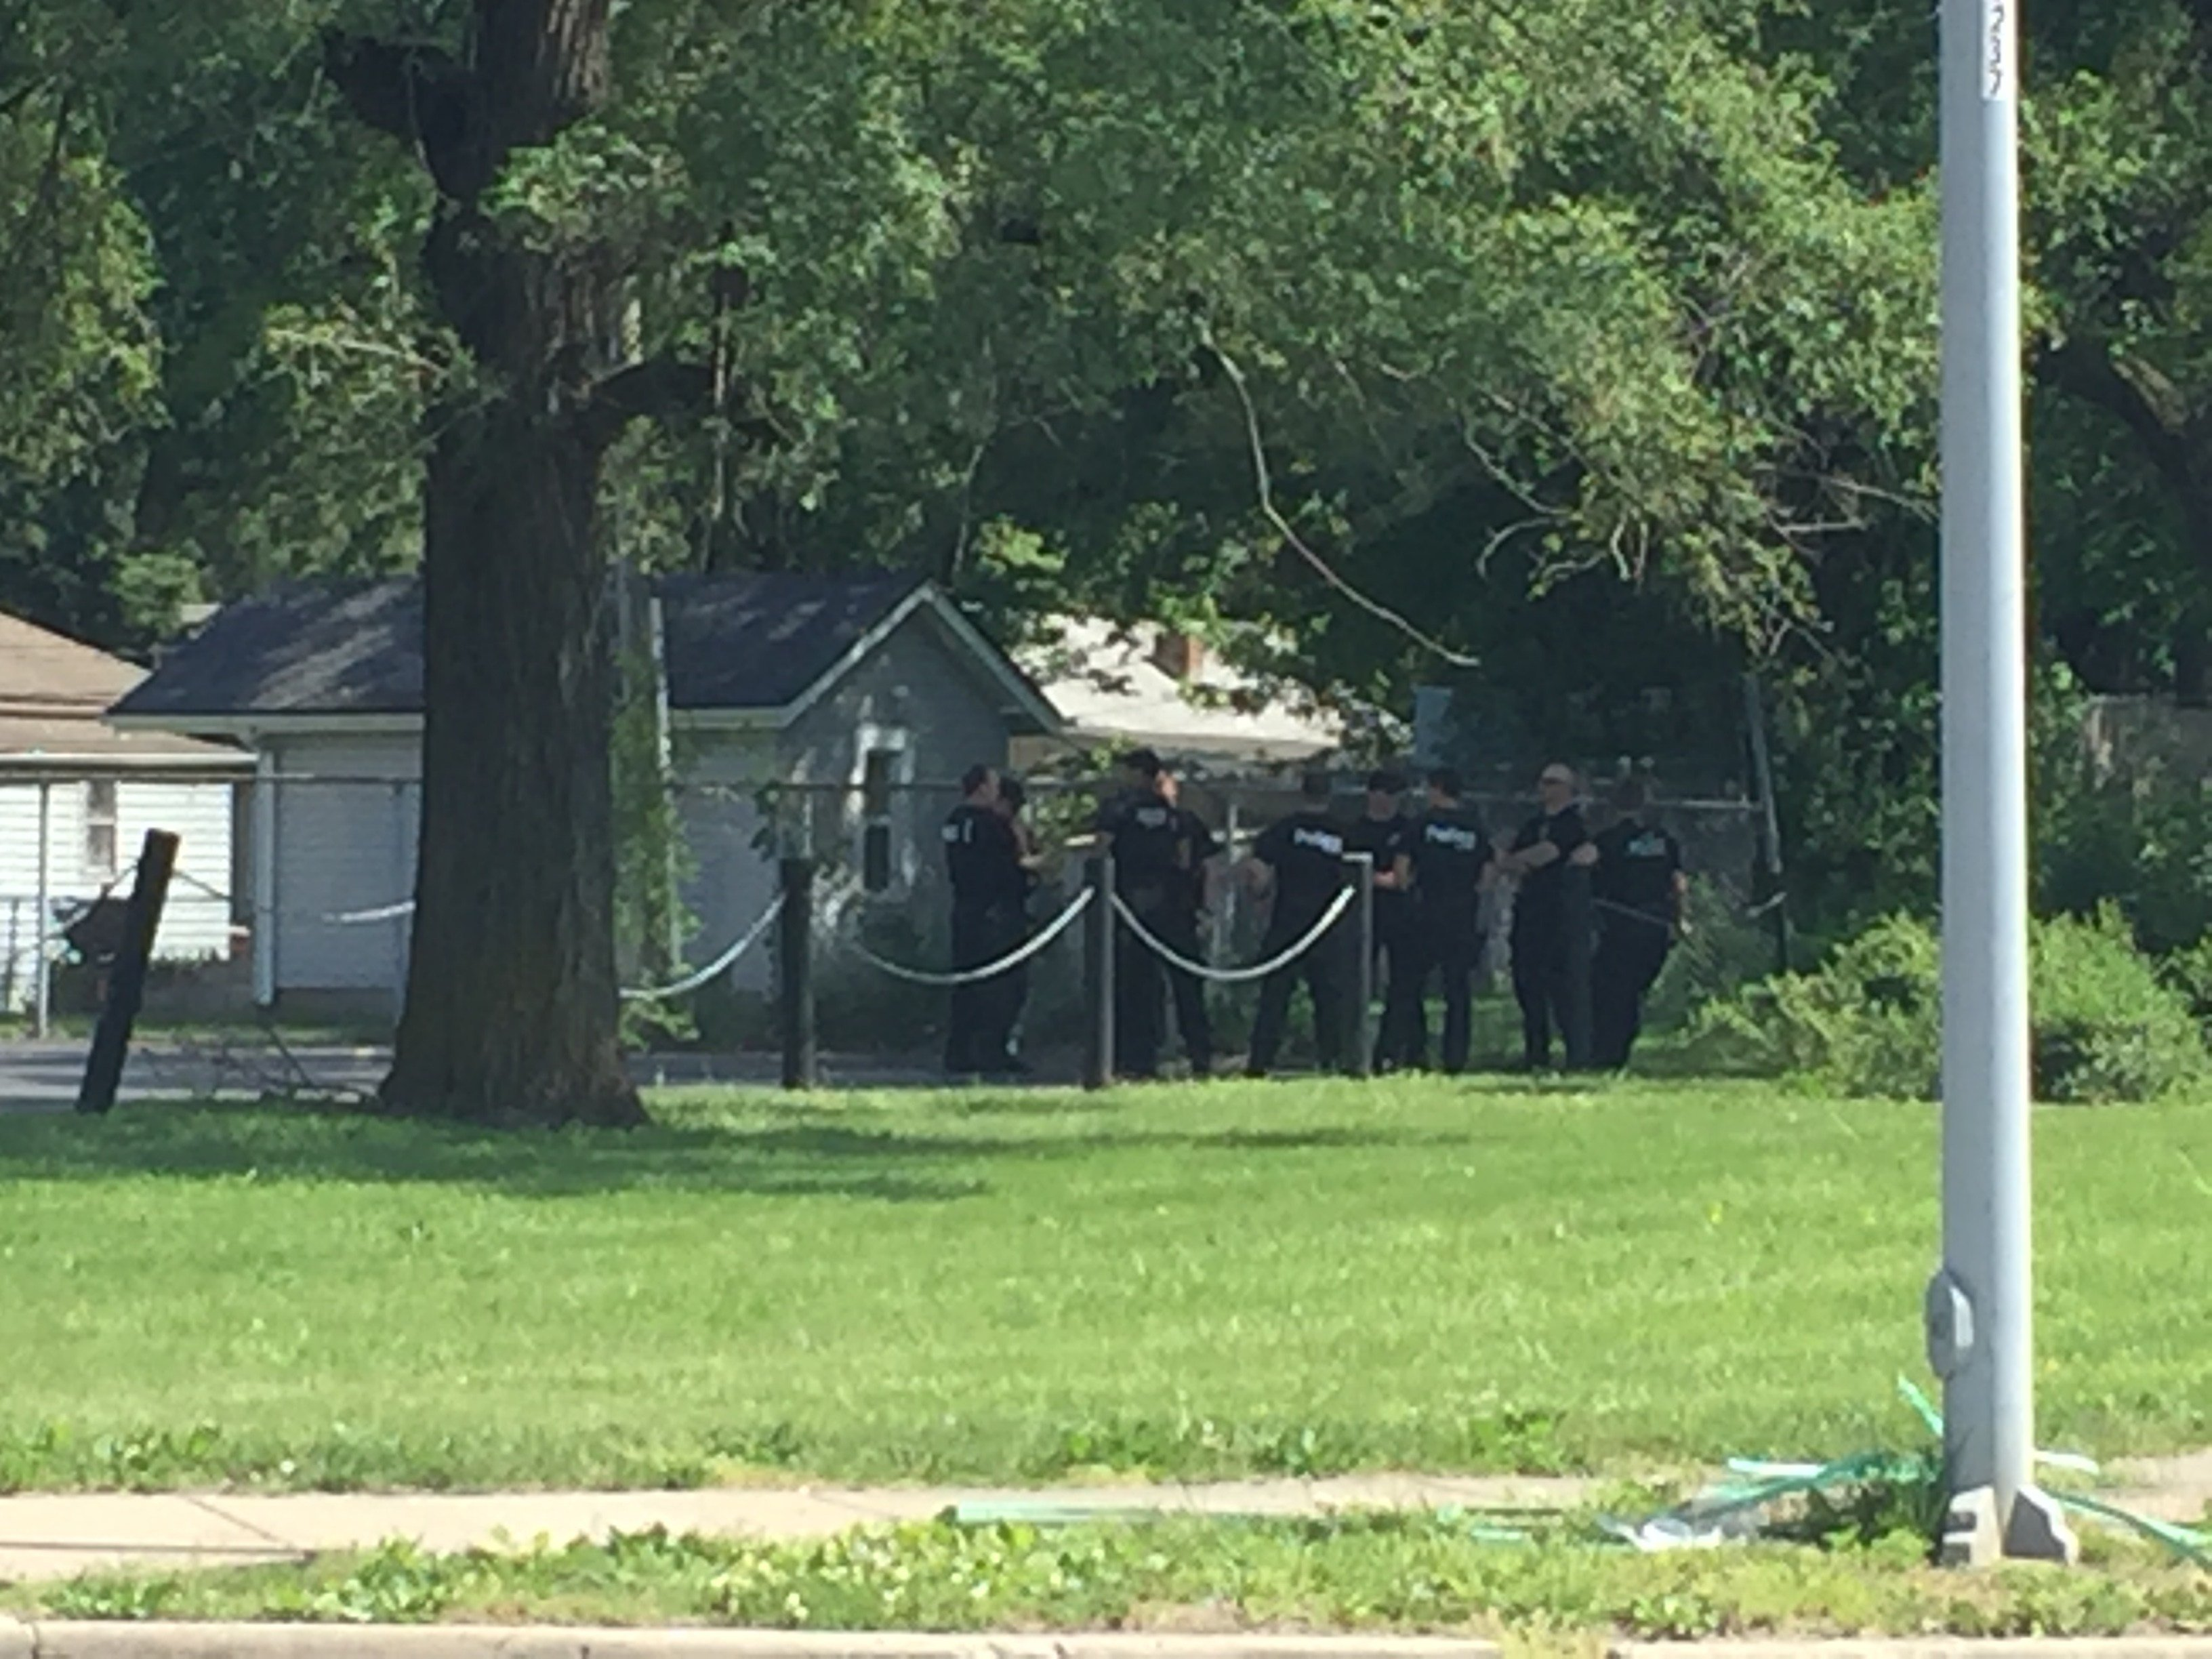 Police were called just after 12:50 p.m. to the area of 83rd Street and Woodland Avenue on a shots fired call.  (Betsy Webster/KCTV5 News)